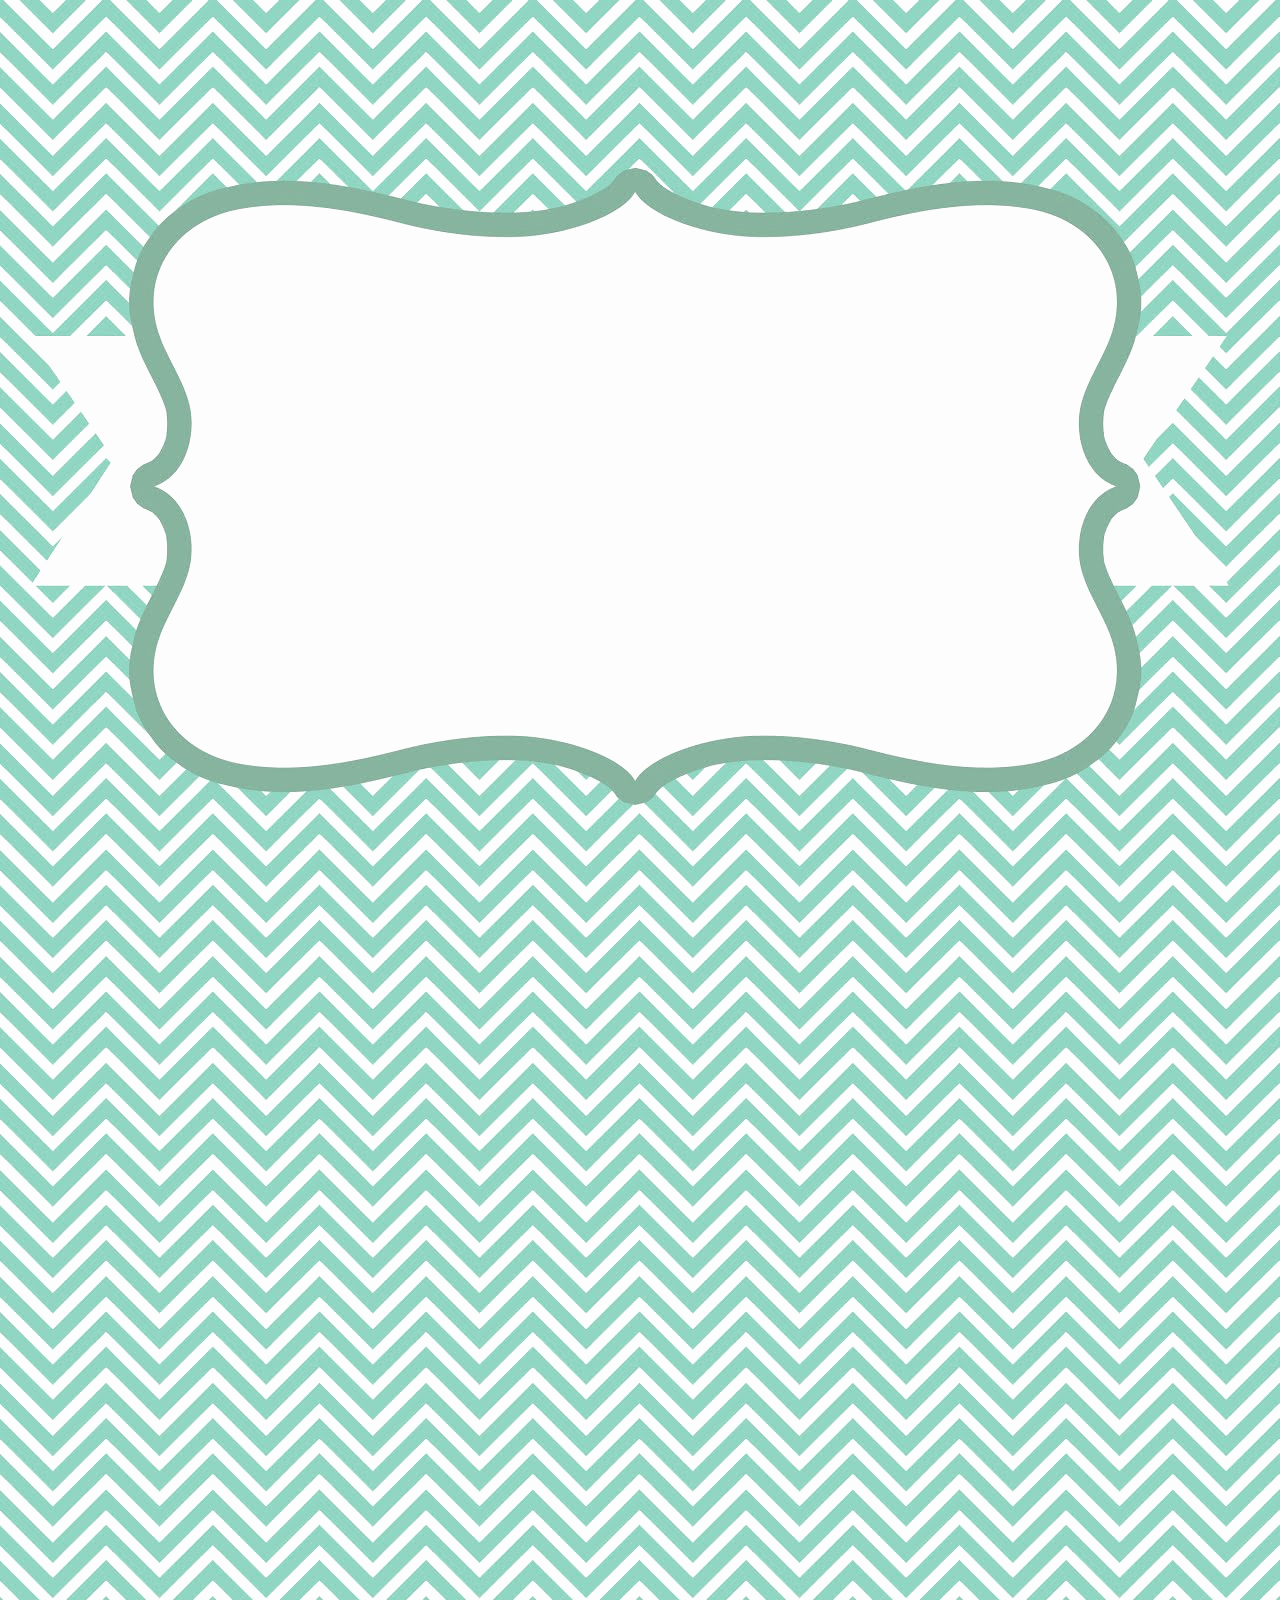 Free Binder Cover Templates Awesome Seventh and Bliss Binder Covers Freebie